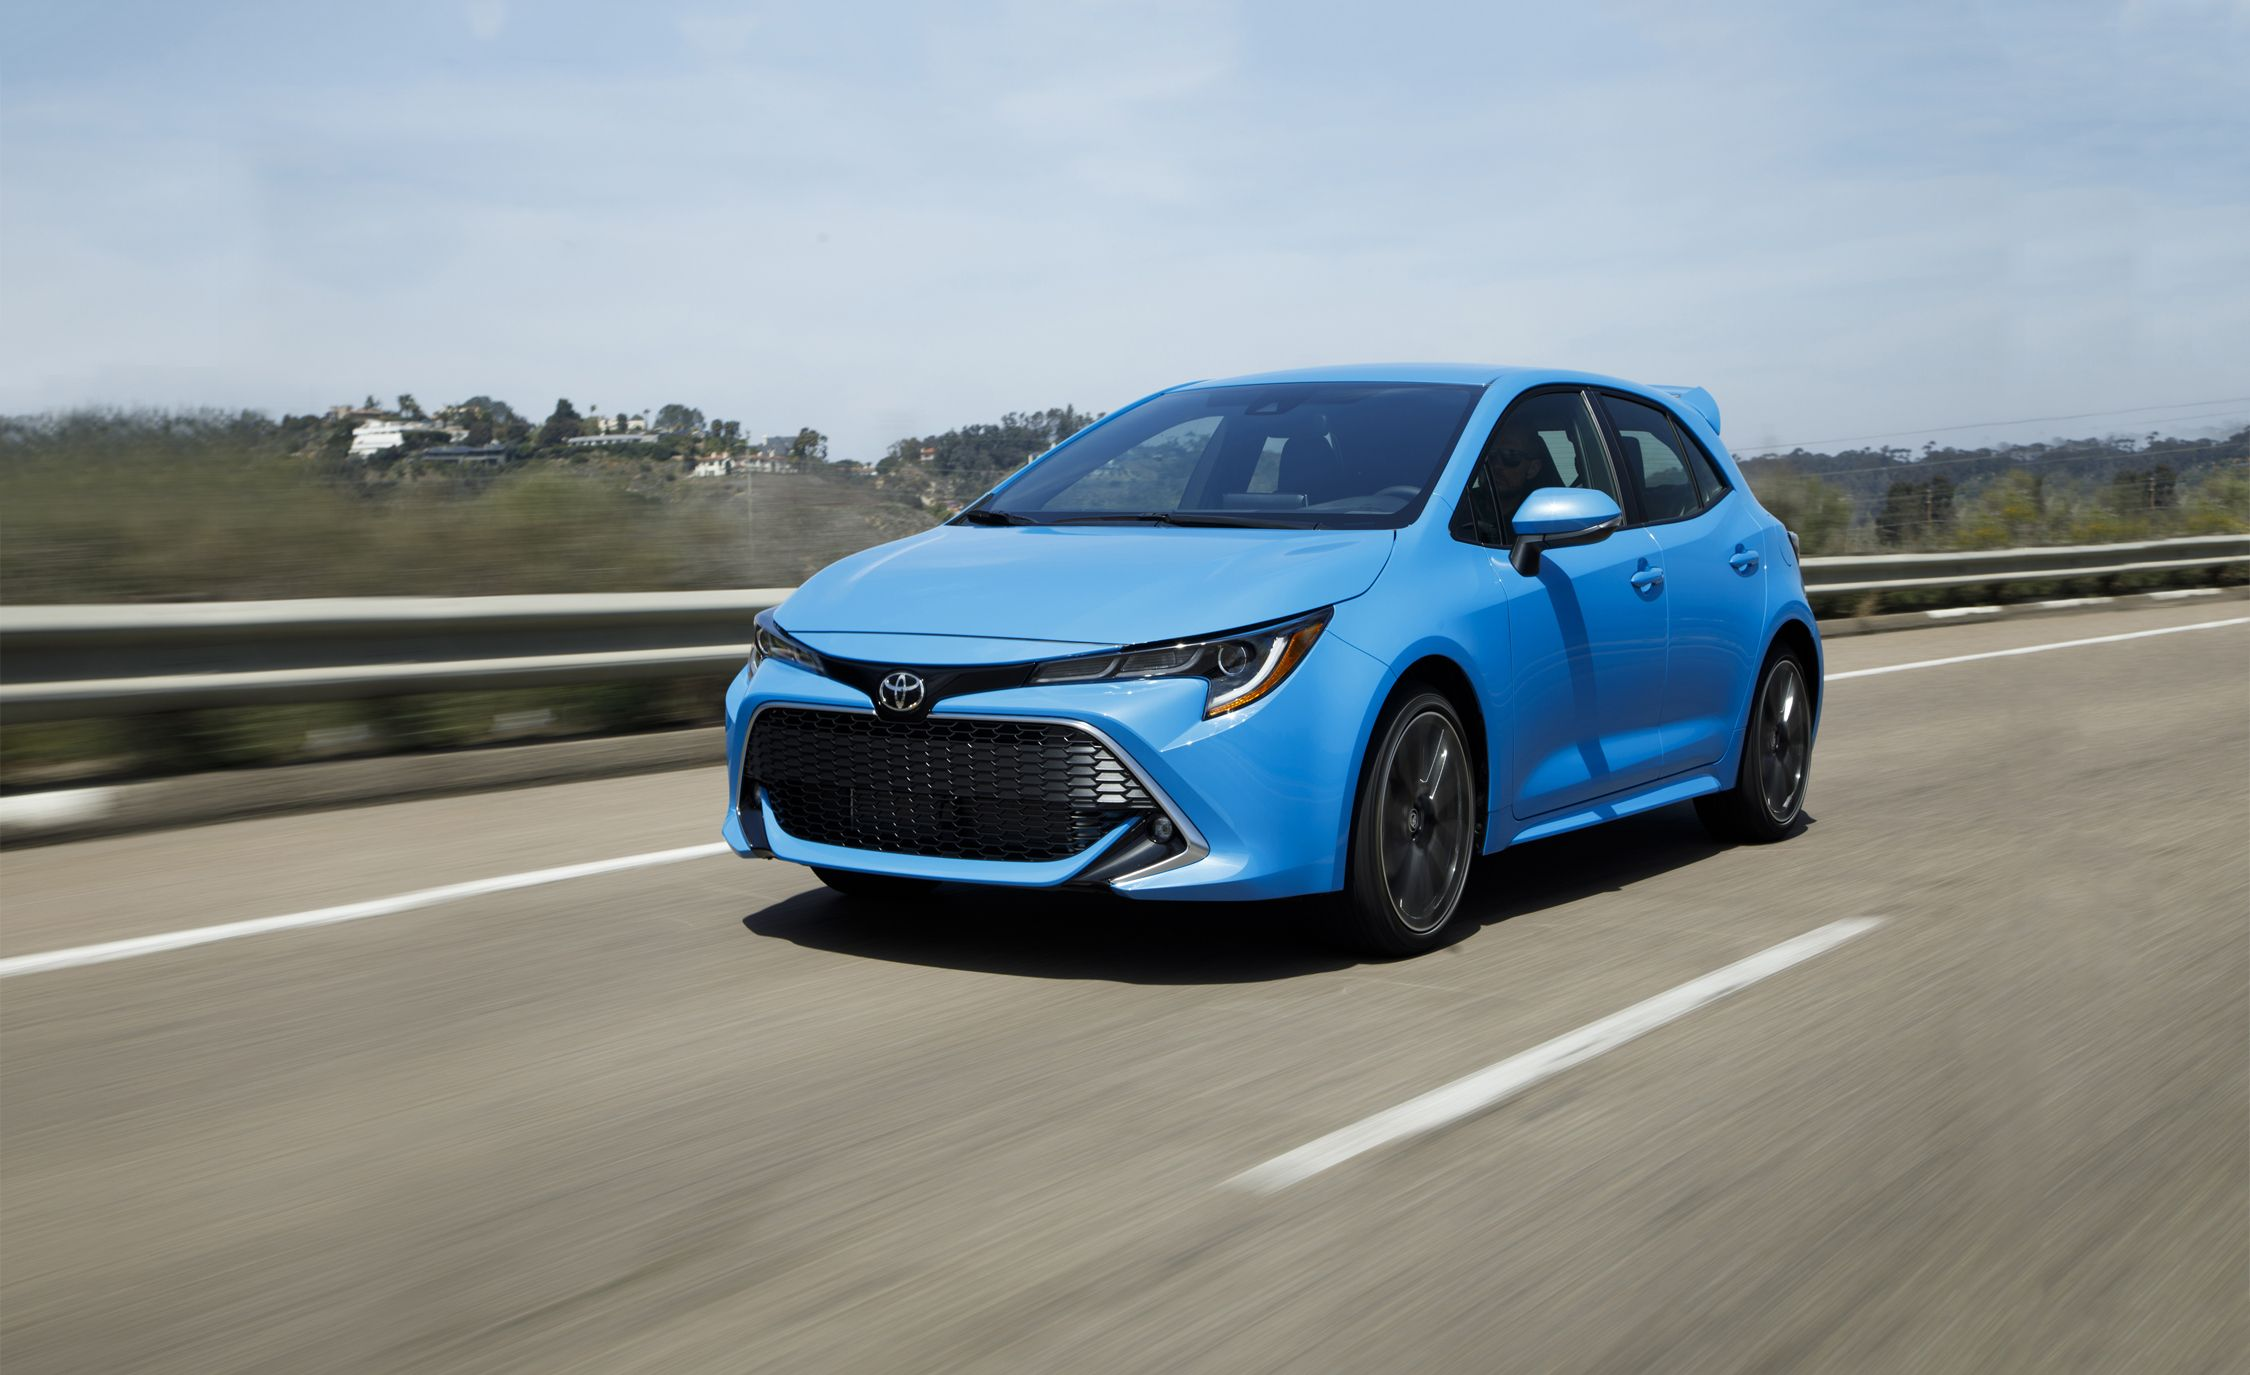 2019 toyota corolla hatchback first drive still the same soul rh caranddriver com Toyota Yaris Hatch Tate's Auto Center